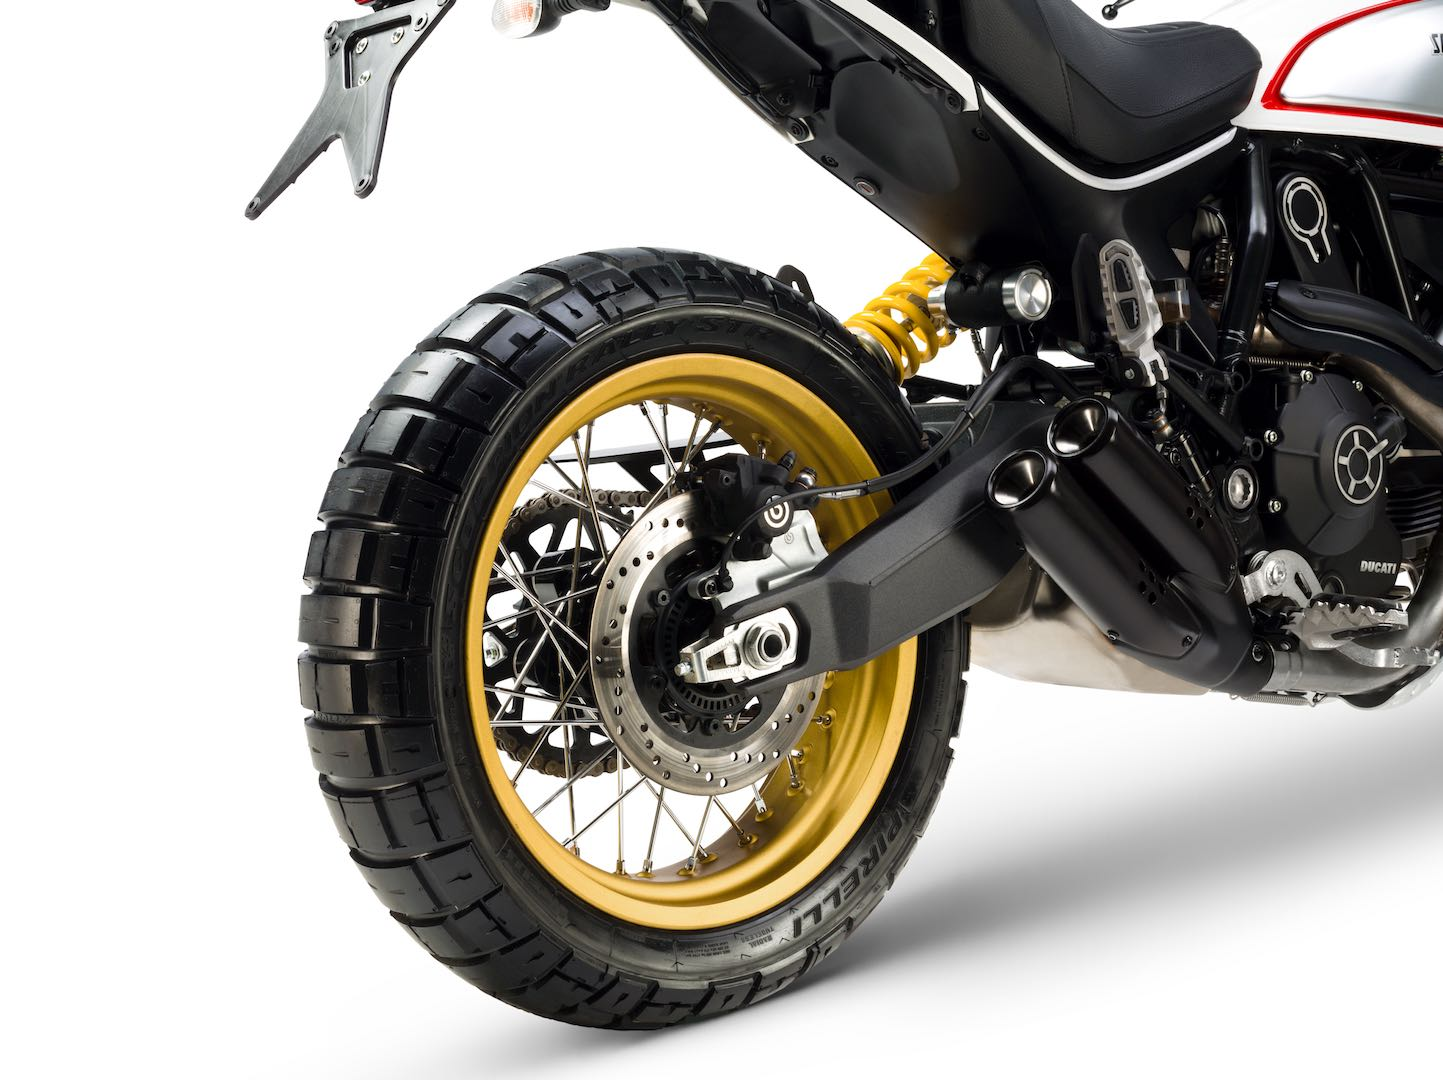 ducati desert sled specs 2017 2018 autoevolution. Black Bedroom Furniture Sets. Home Design Ideas